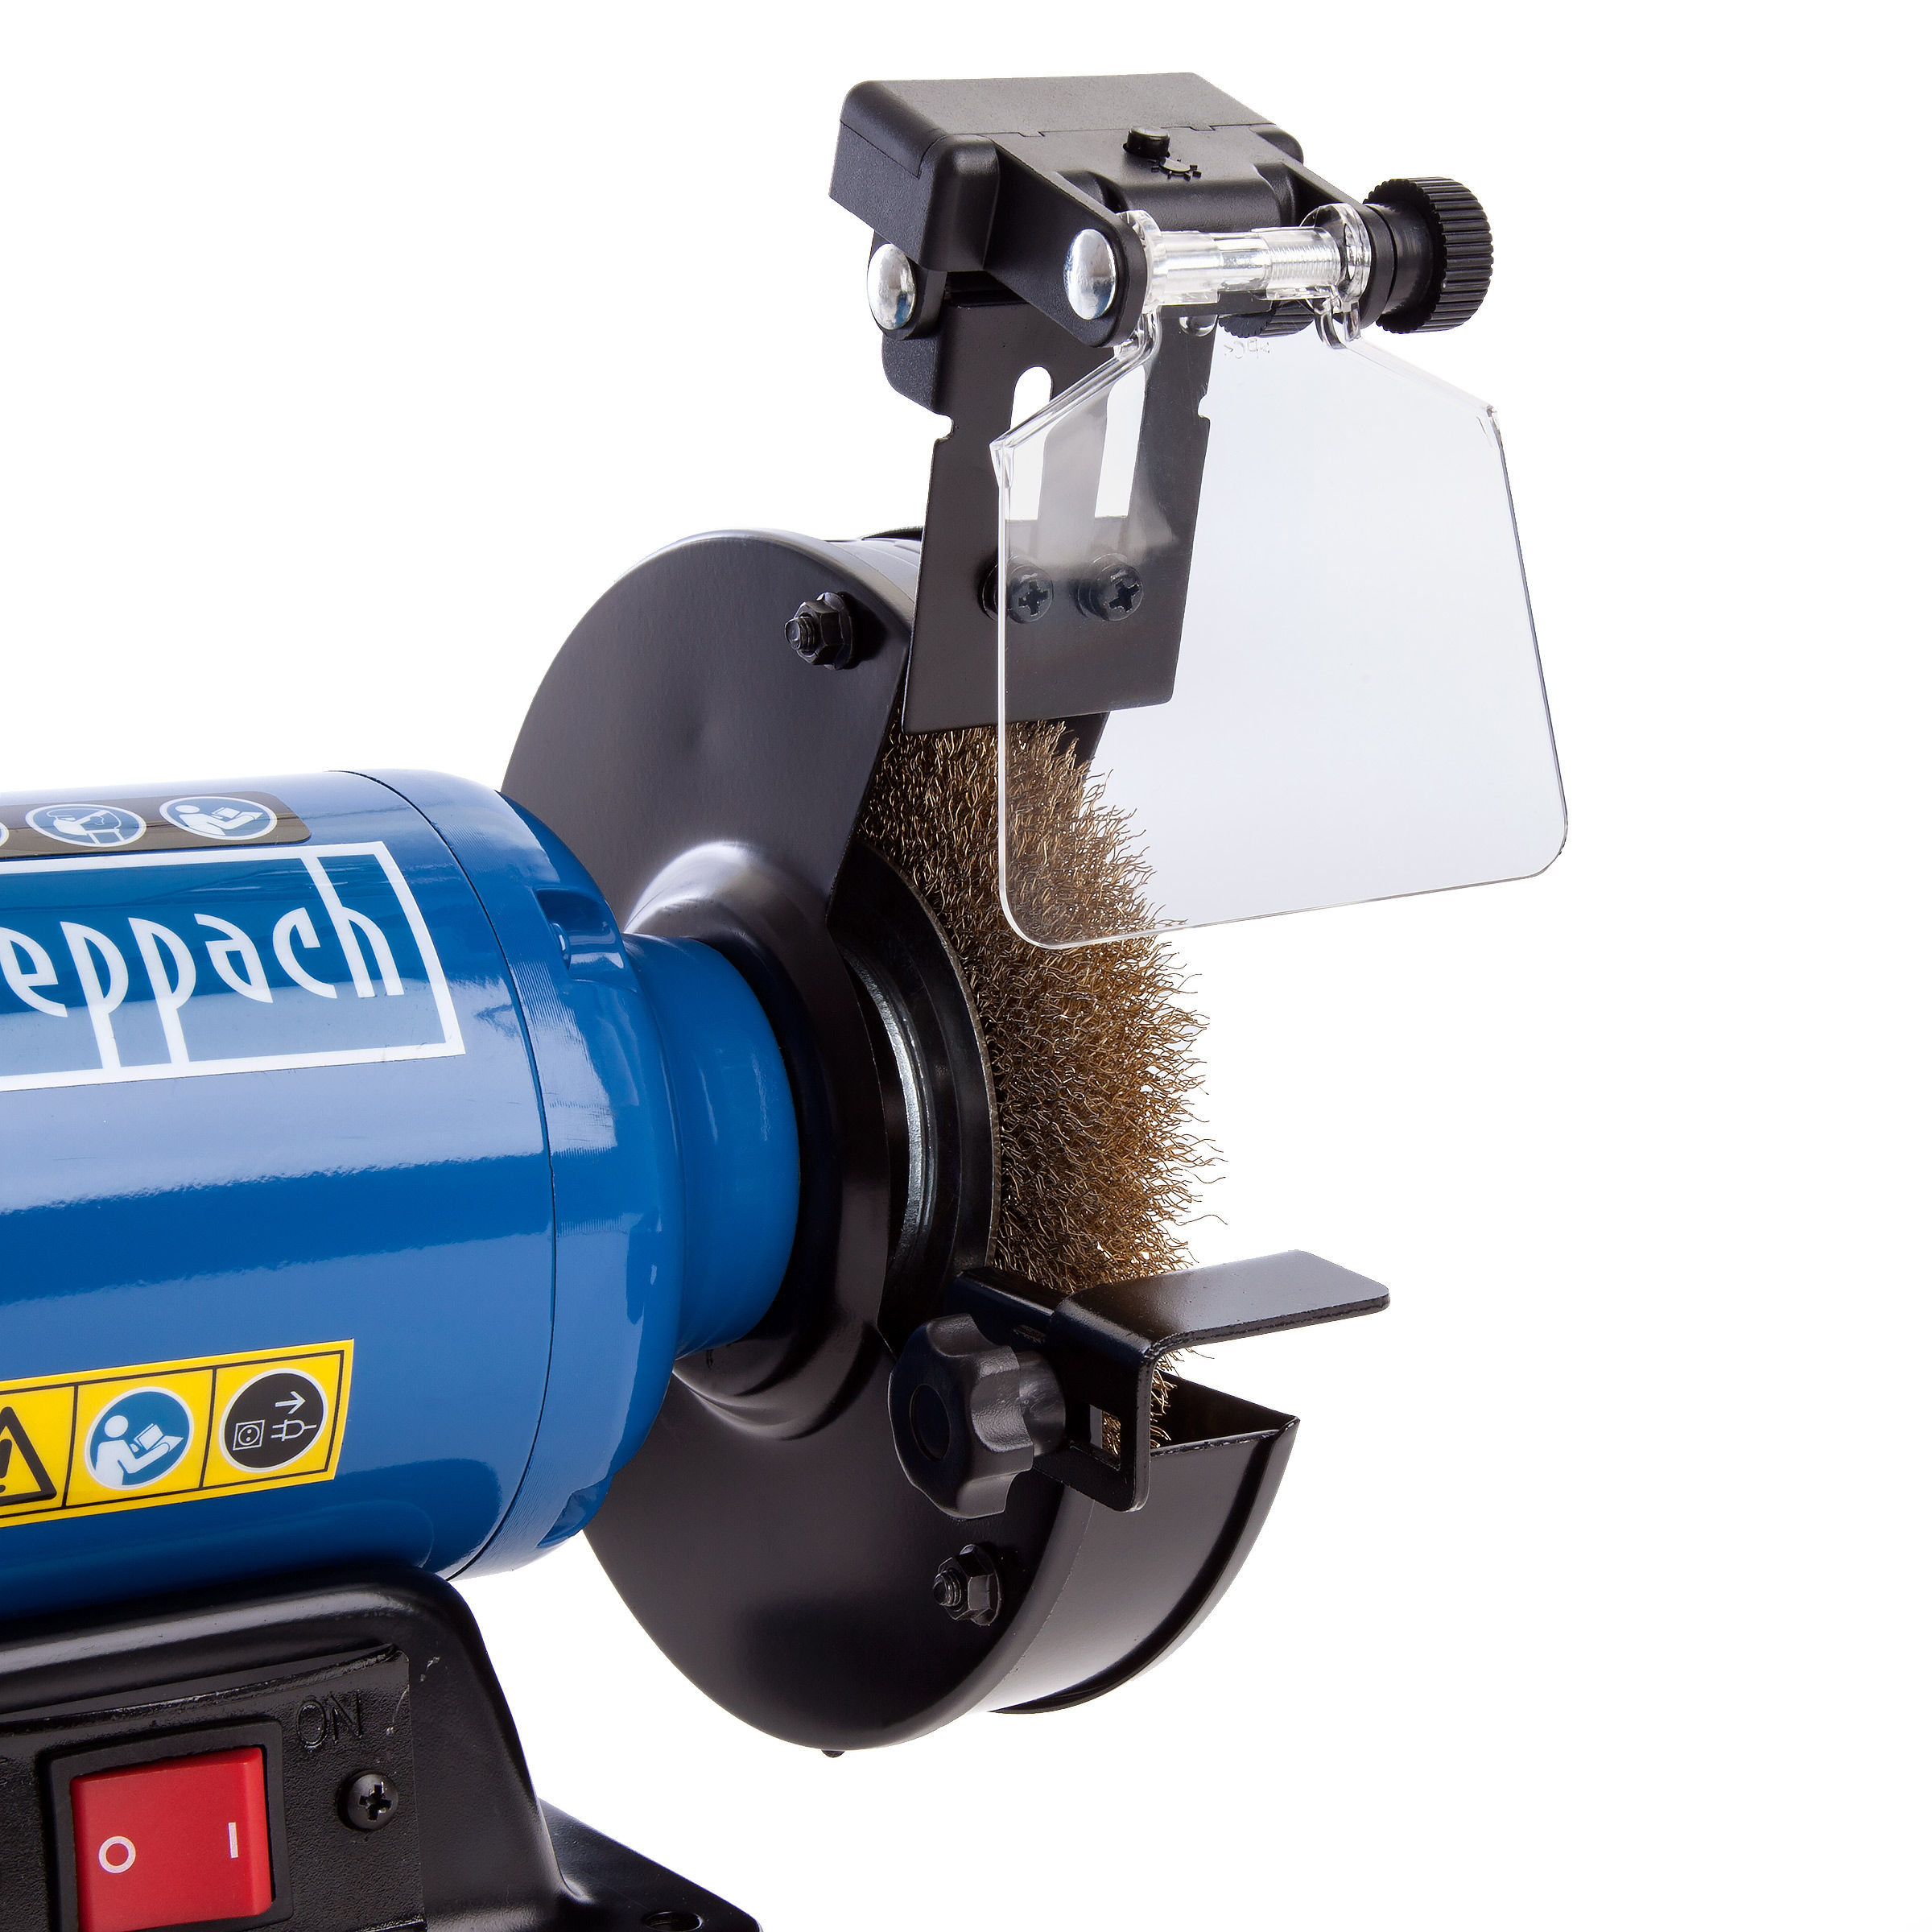 Toolstop Scheppach Sm150lb Twin Bench Grinder With Wire